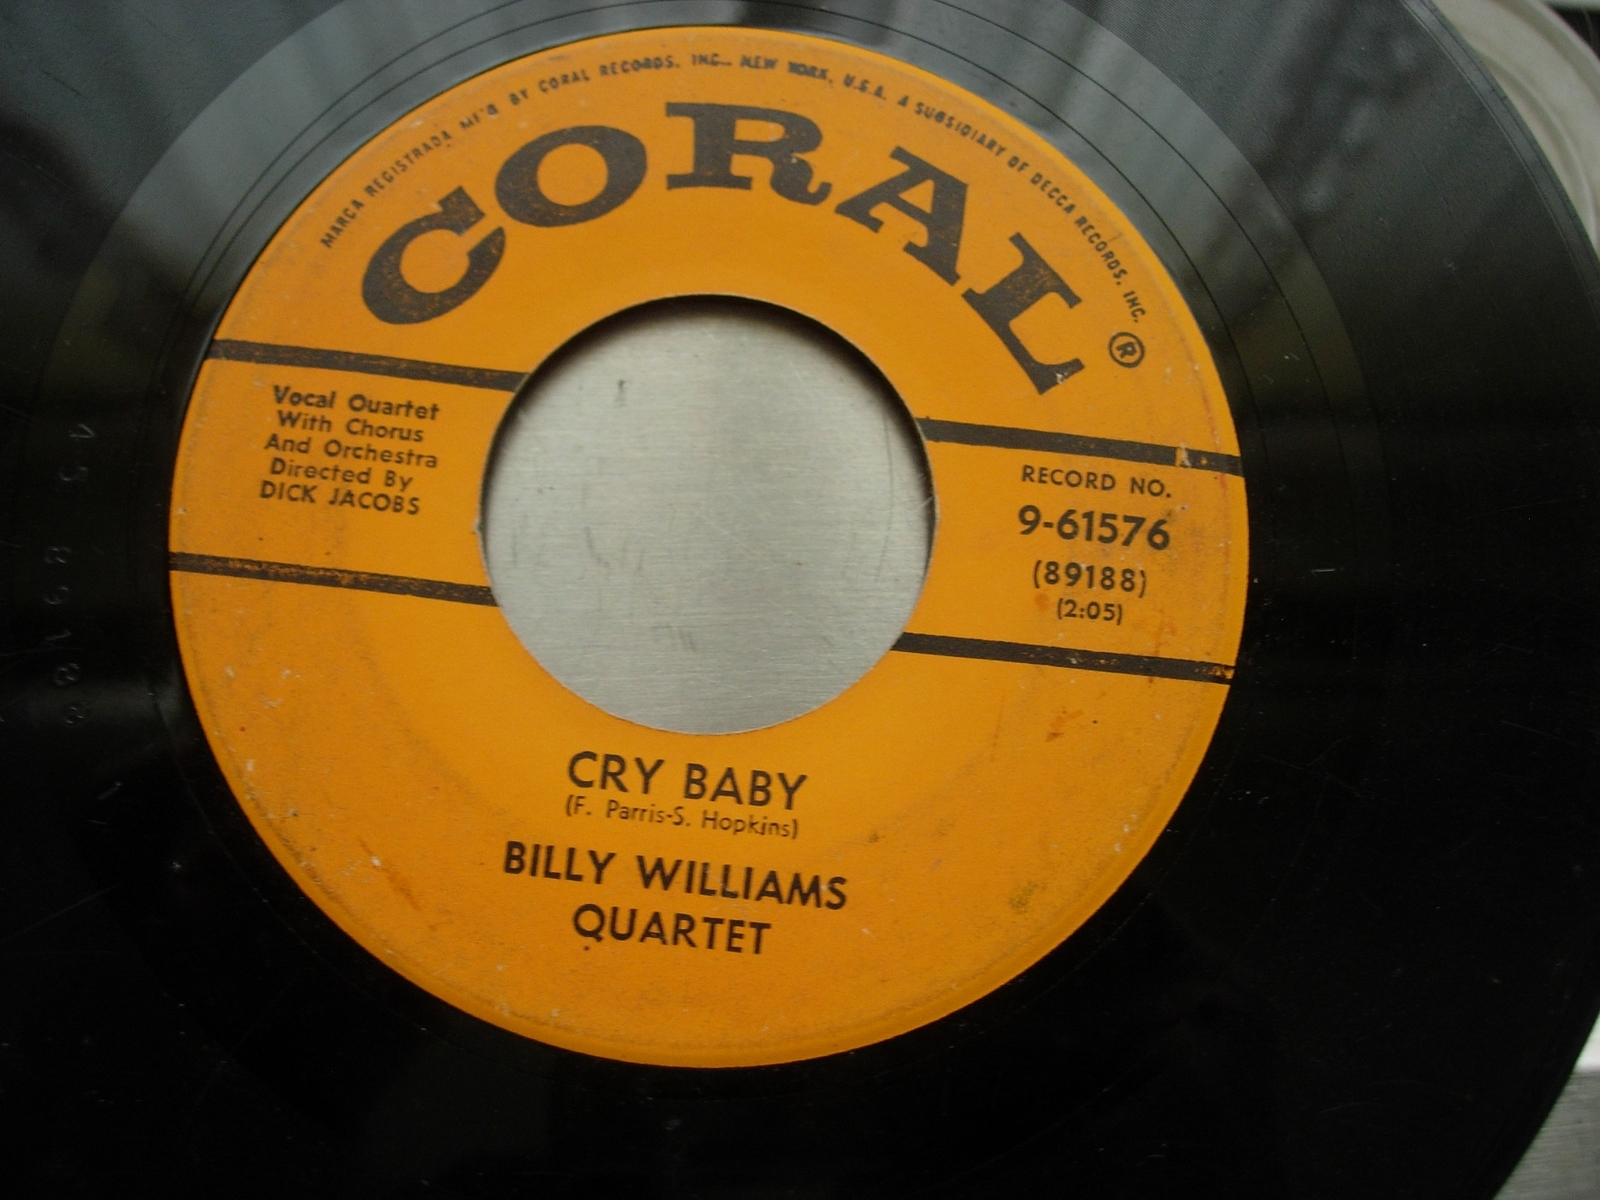 BILLY WILLIAMS QUARTET A Crazy Little Palace / Cry Baby - Coral Records 9-61576